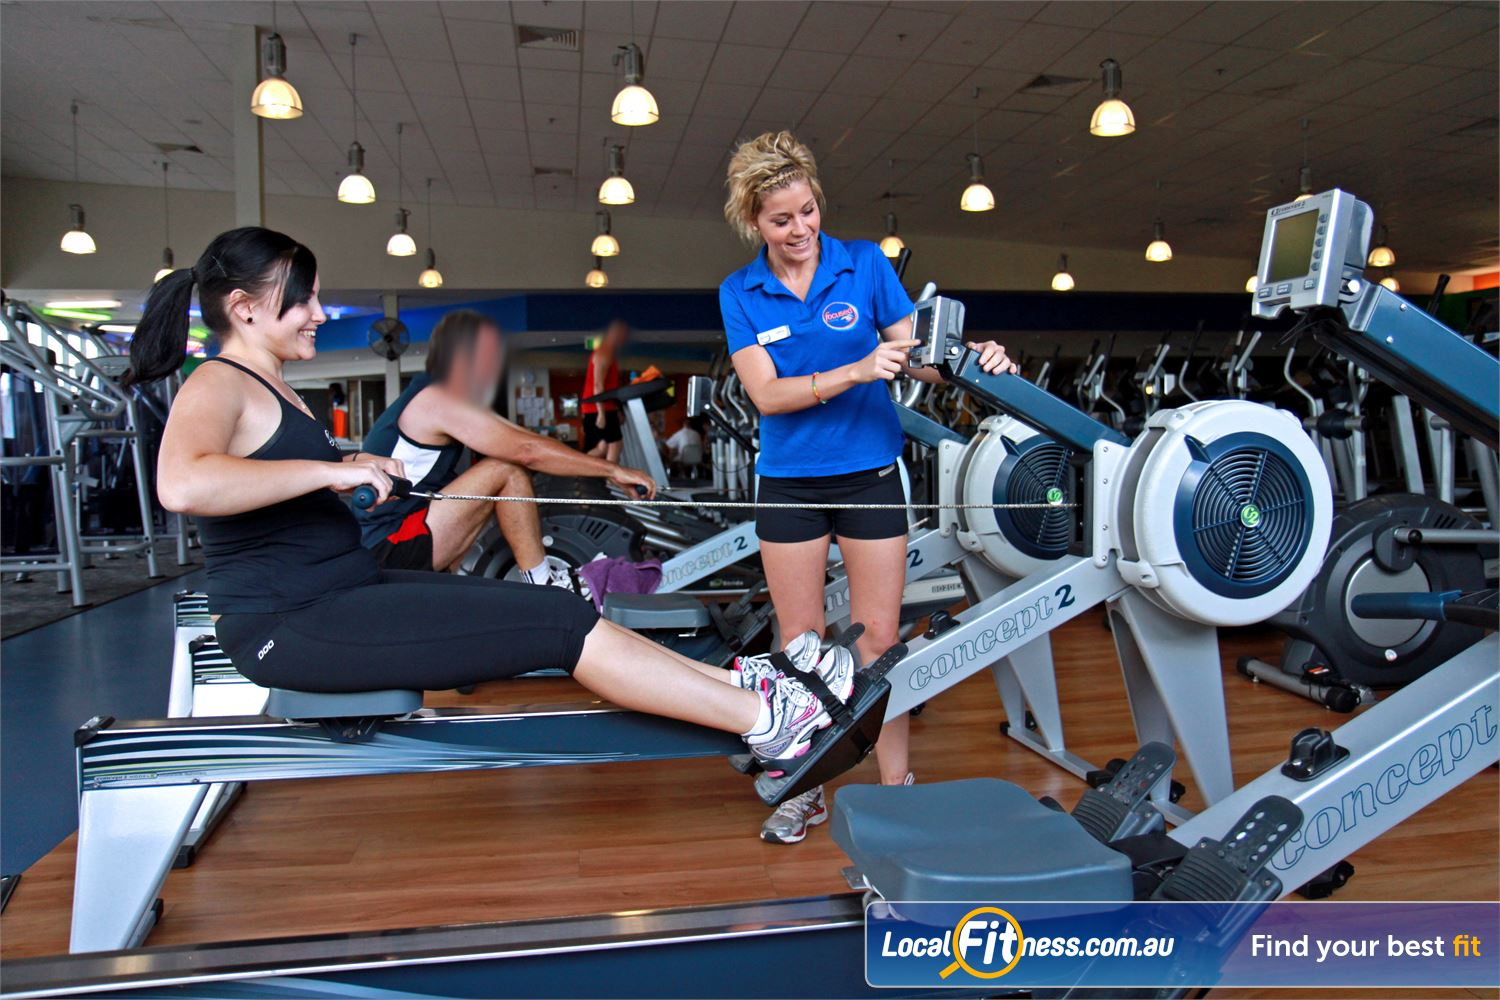 Goodlife Health Clubs Near West Ipswich Our Ipswich personal trainers can vary your cardio with indoor rowing.